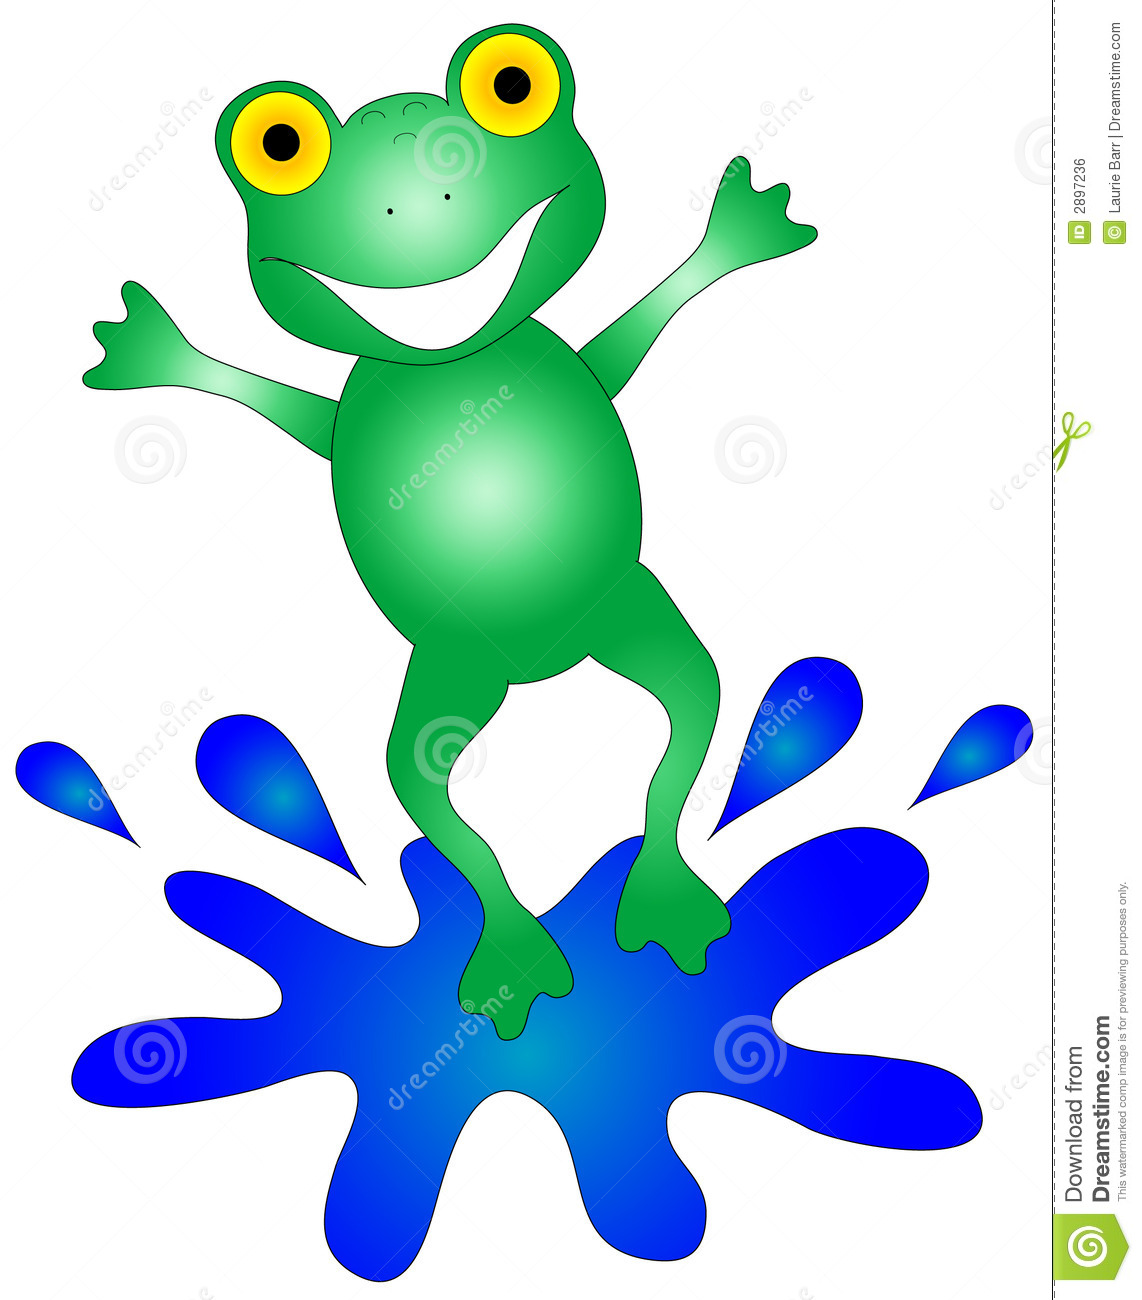 1142x1300 Puddle Of Water, Clip Art. Clipart Panda